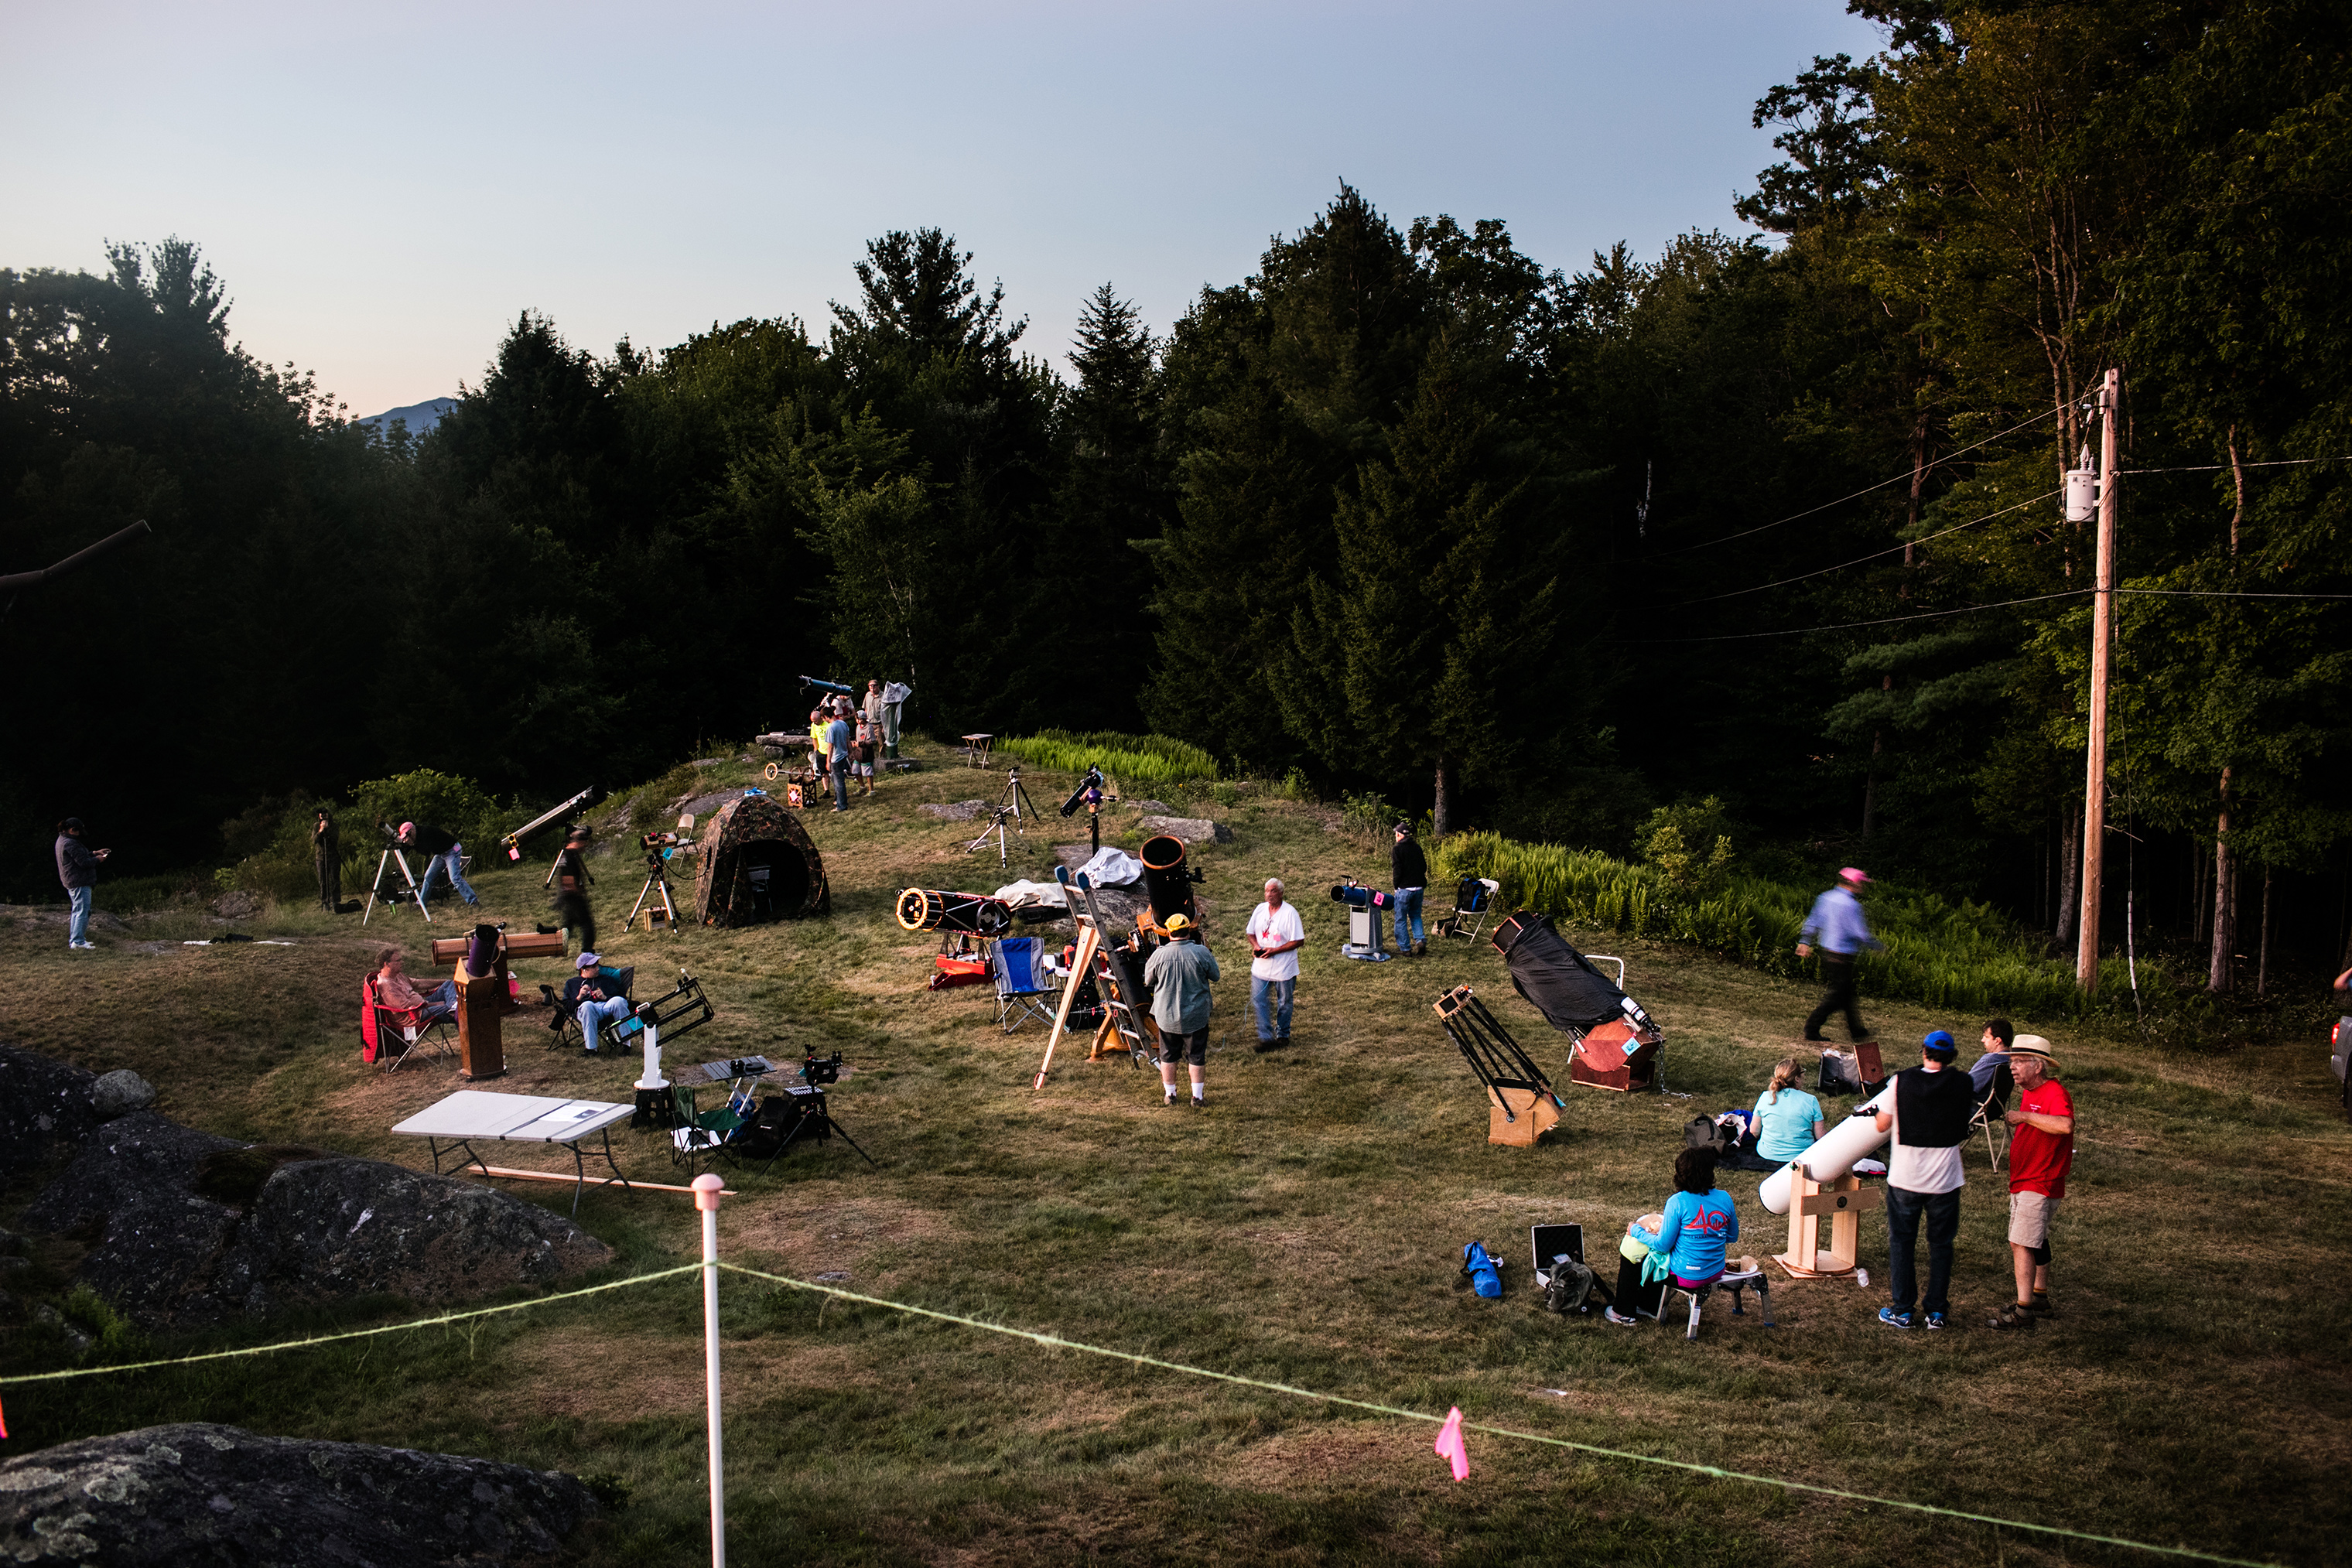 As the sun starts to set, people set up their telescopes, many of which are home-made, on Breezy Hill in Springfield, Vermont.